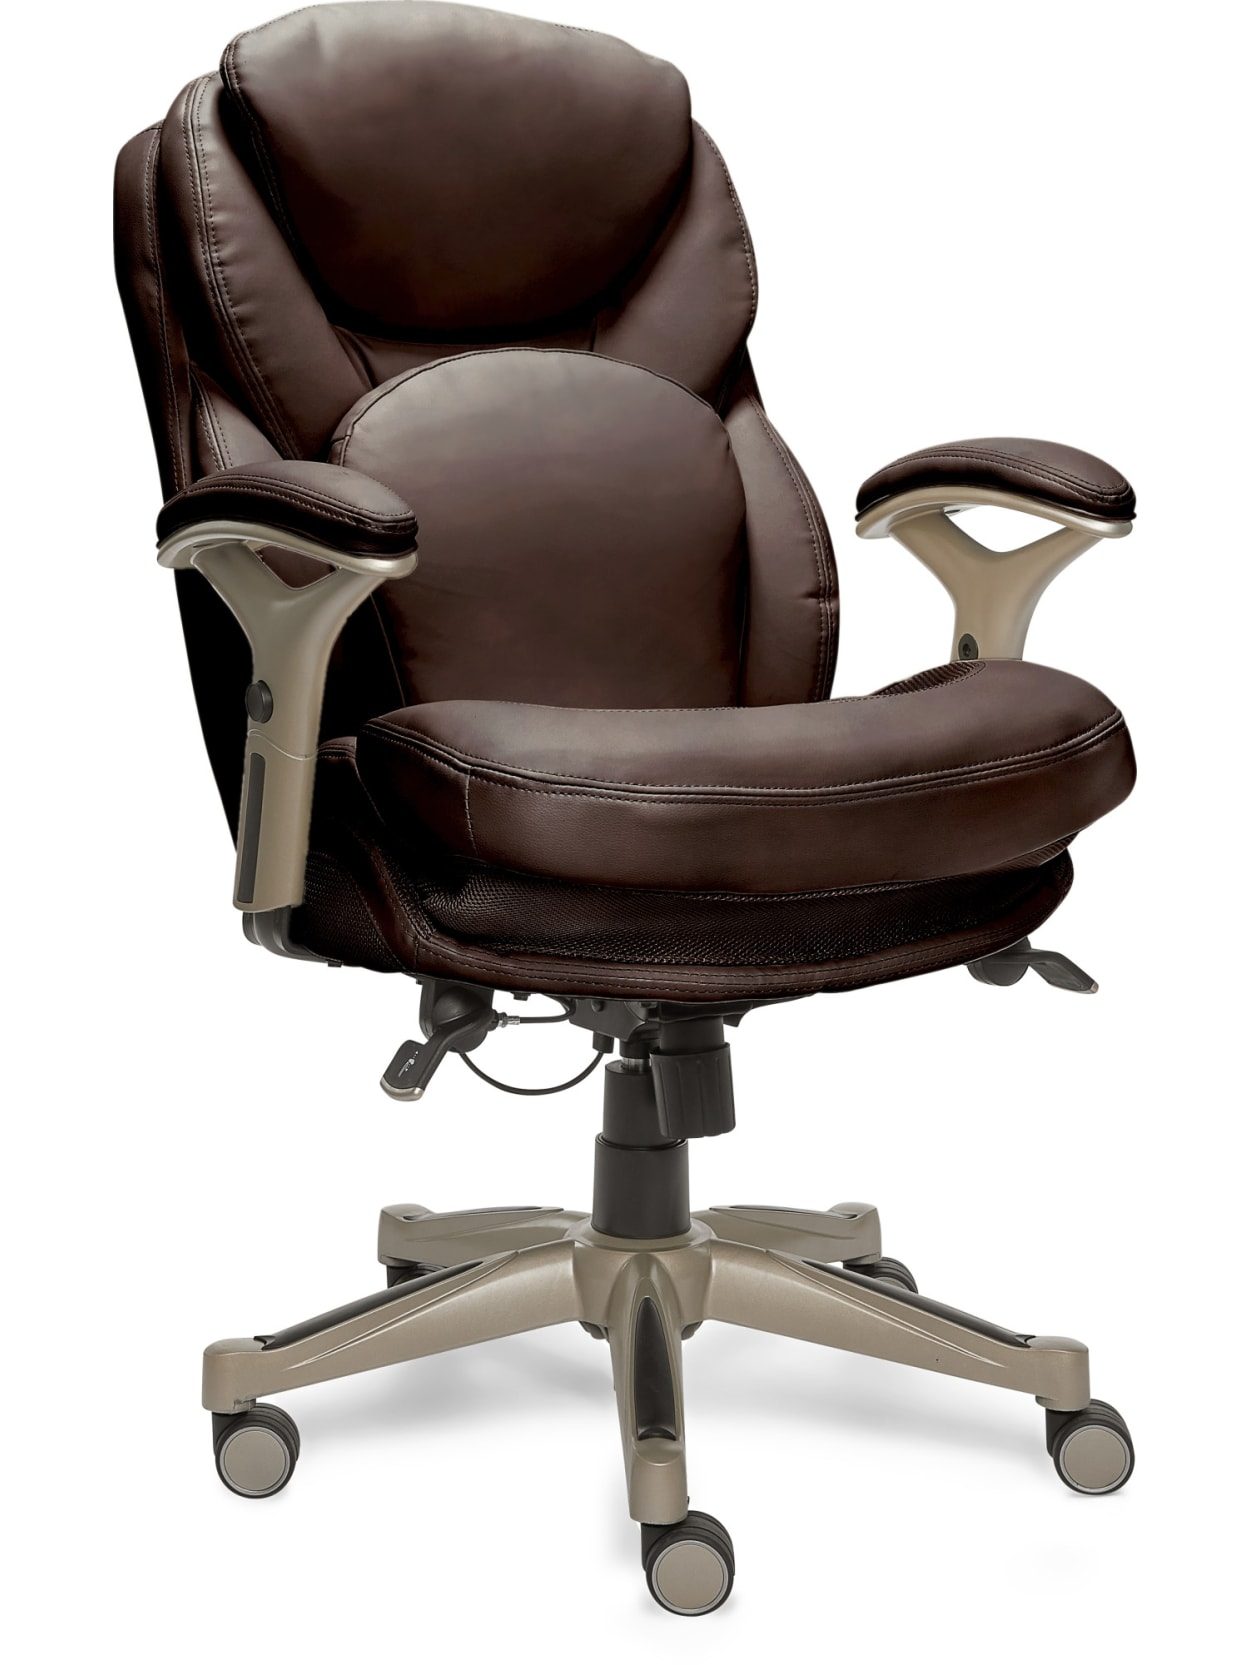 Serta Works Bonded Leather Mid Back Office Chair With Back In